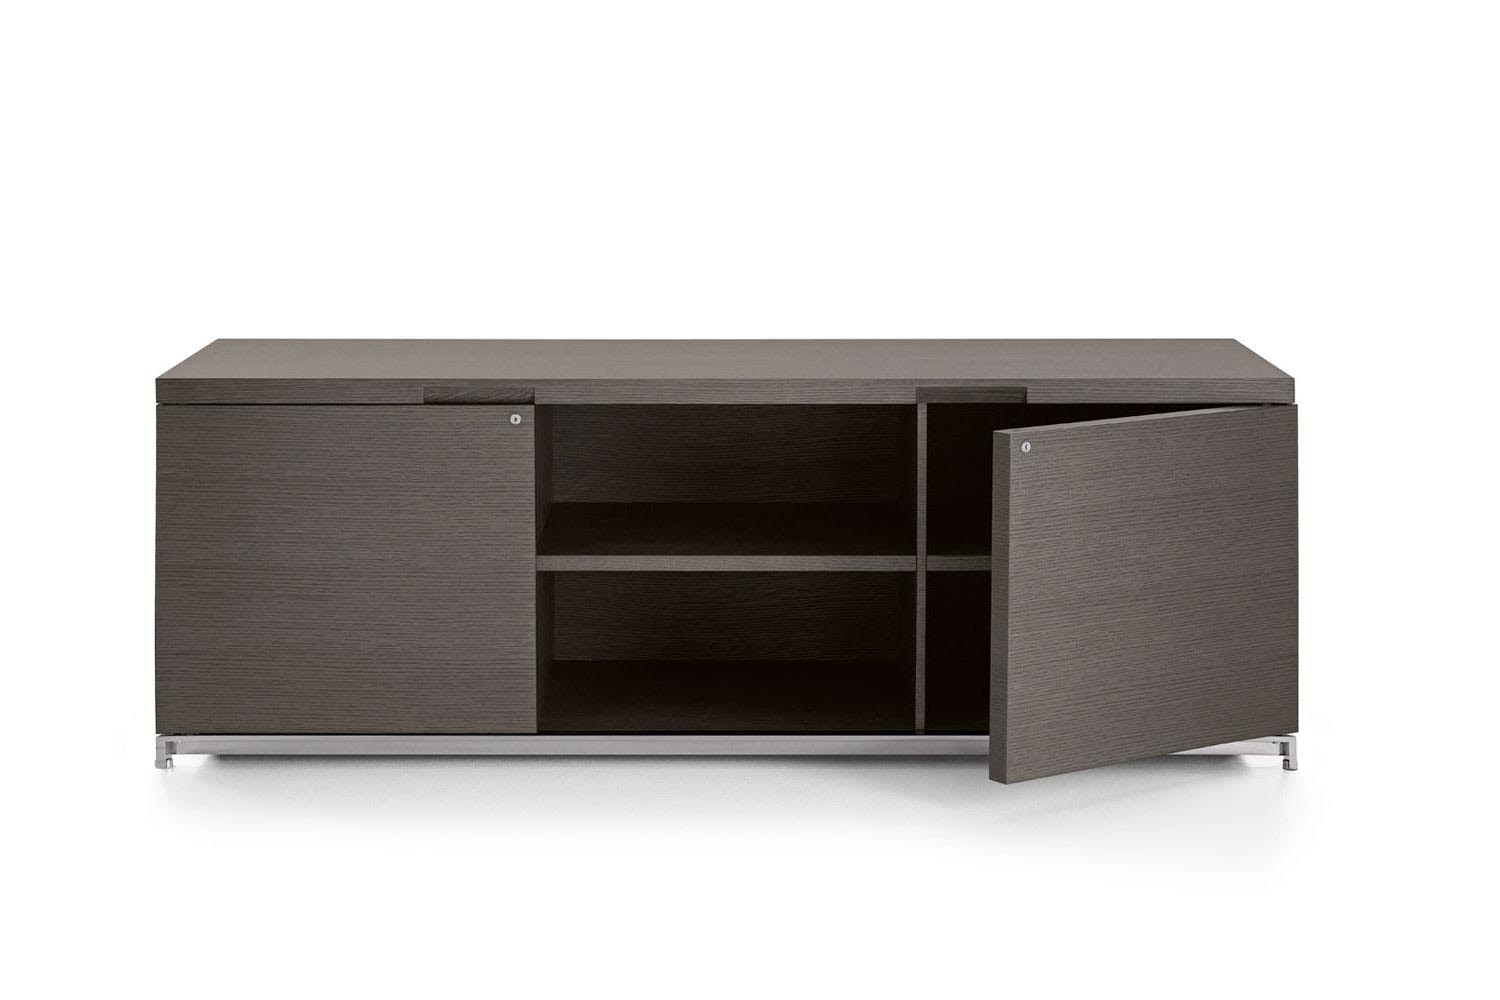 AC Executive - Chests of Drawers and Storage Units by Antonio Citterio for B&B Italia Project